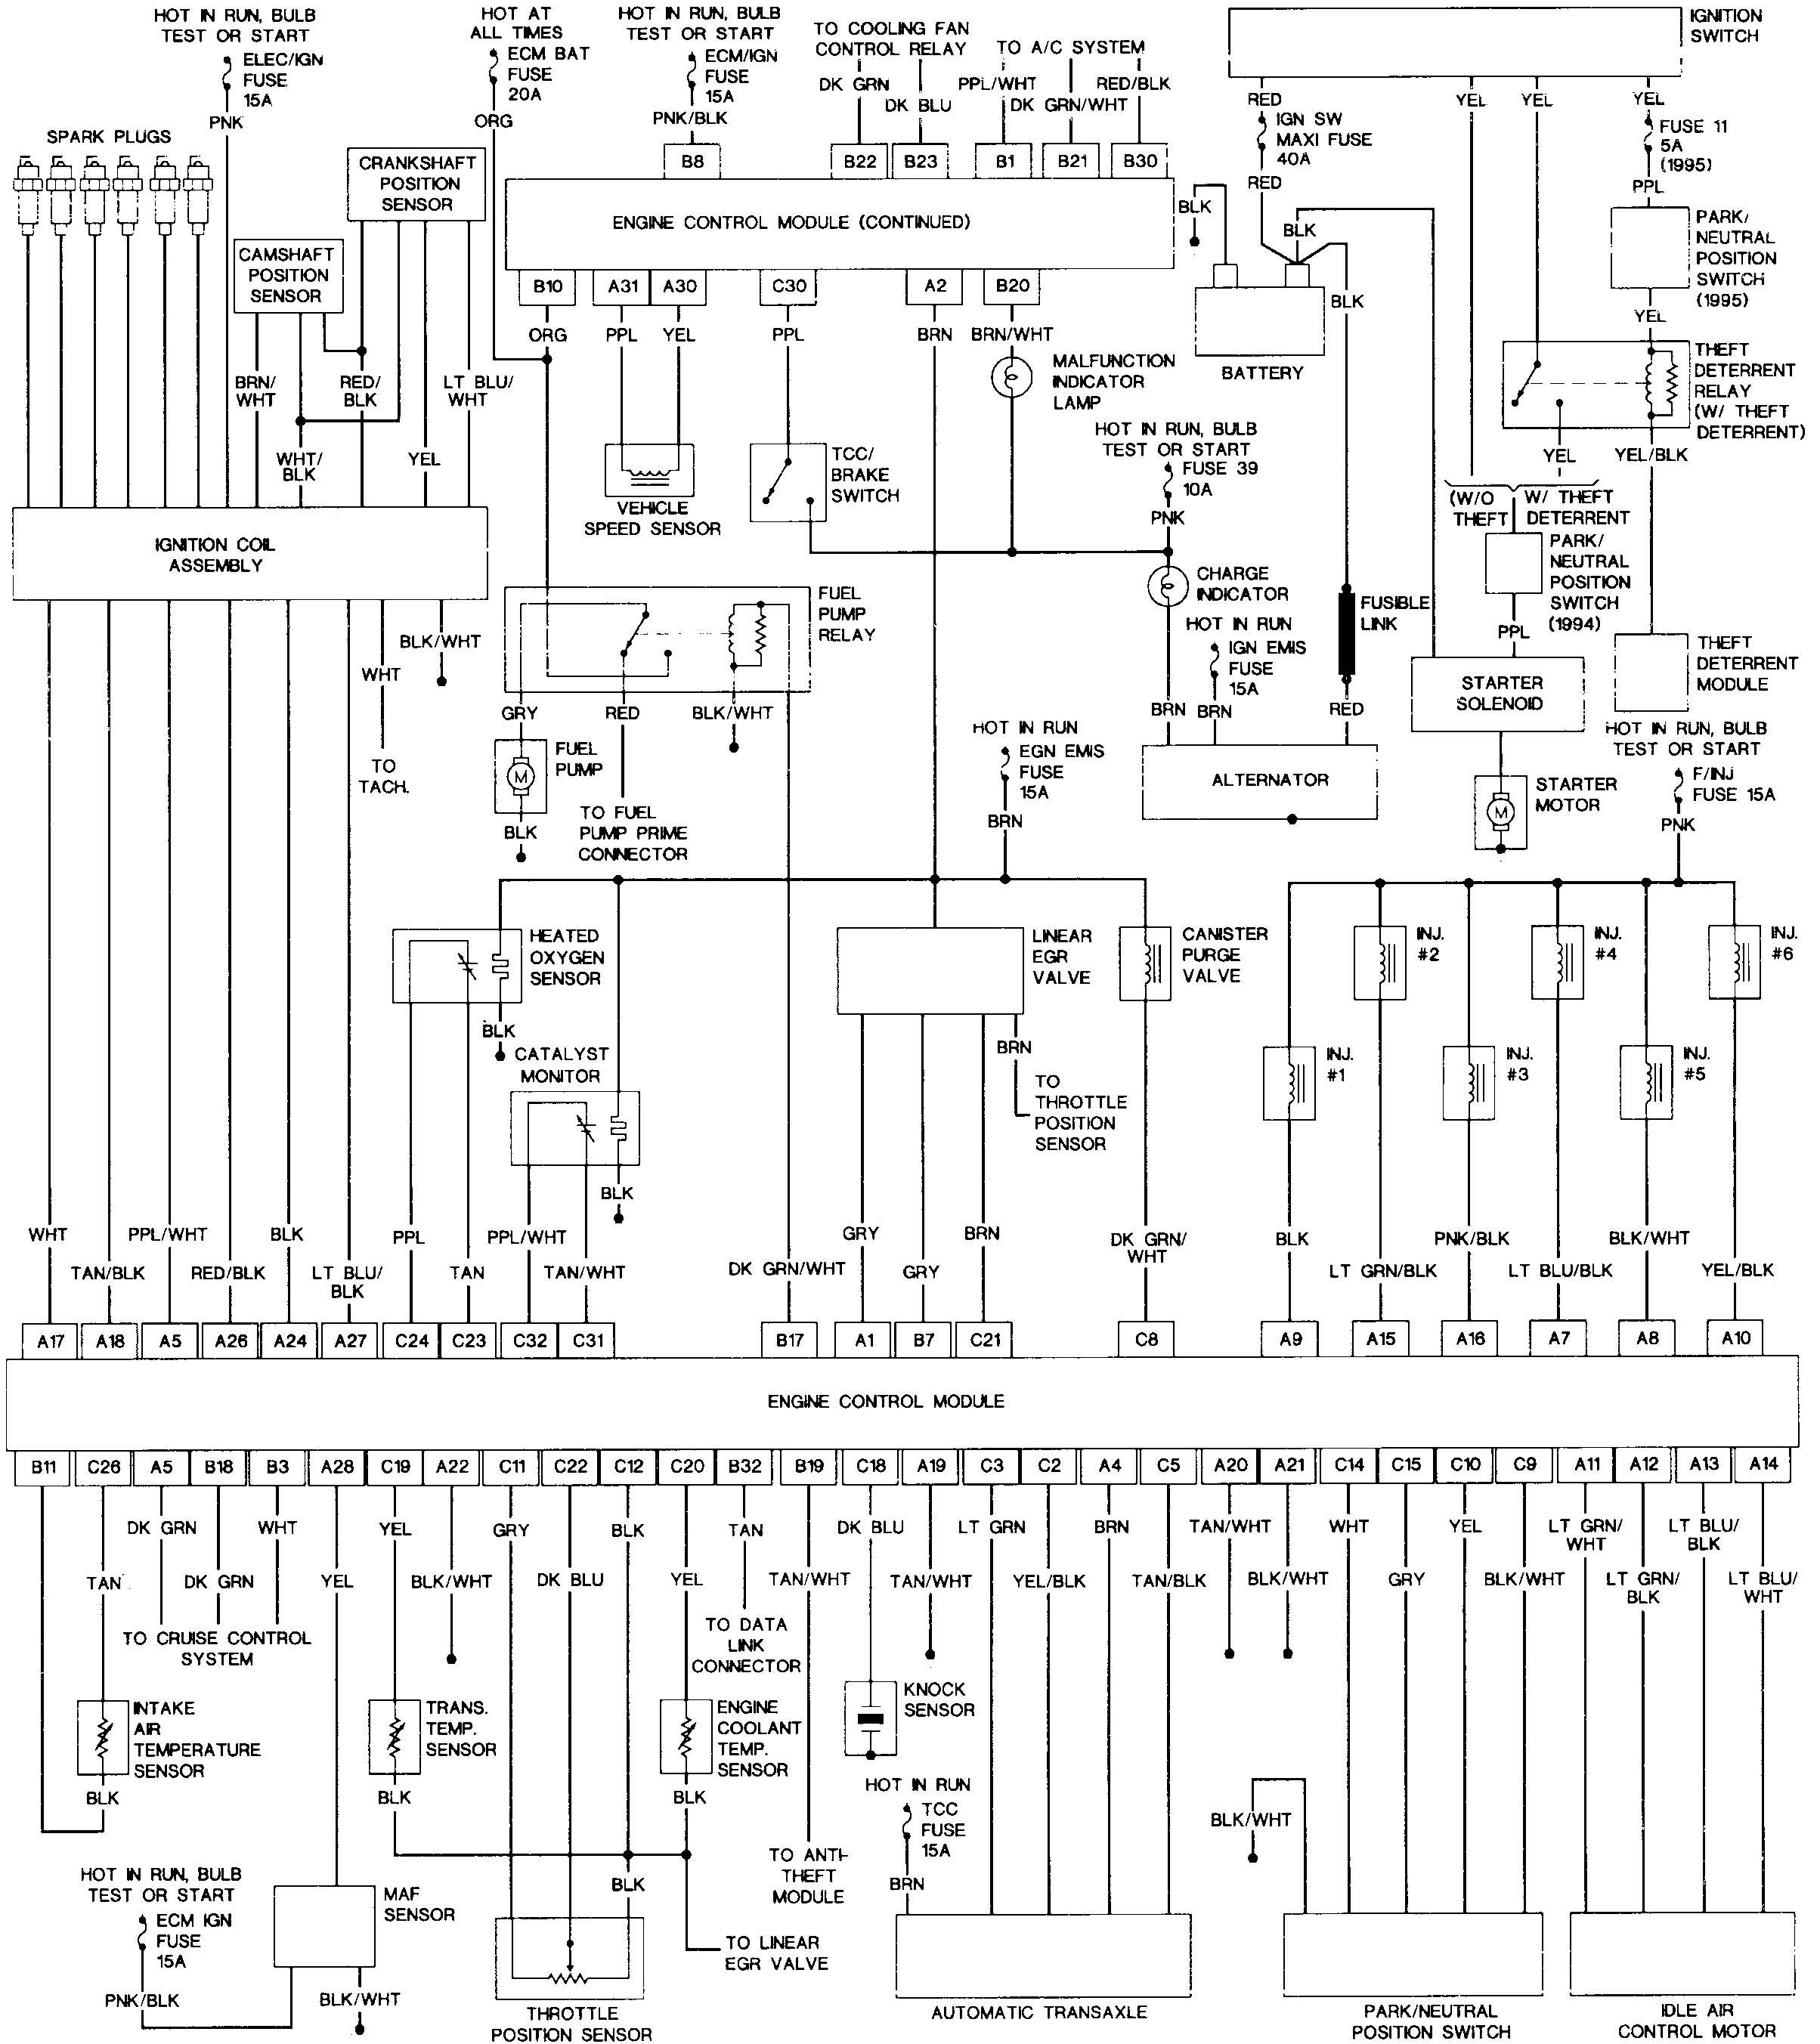 2002 Pontiac Sunfire Engine Diagram Wiring Library 2001 Ignition Switch Of Chevy Cavalier 3 1 Enthusiast Diagrams U2022 Radiator